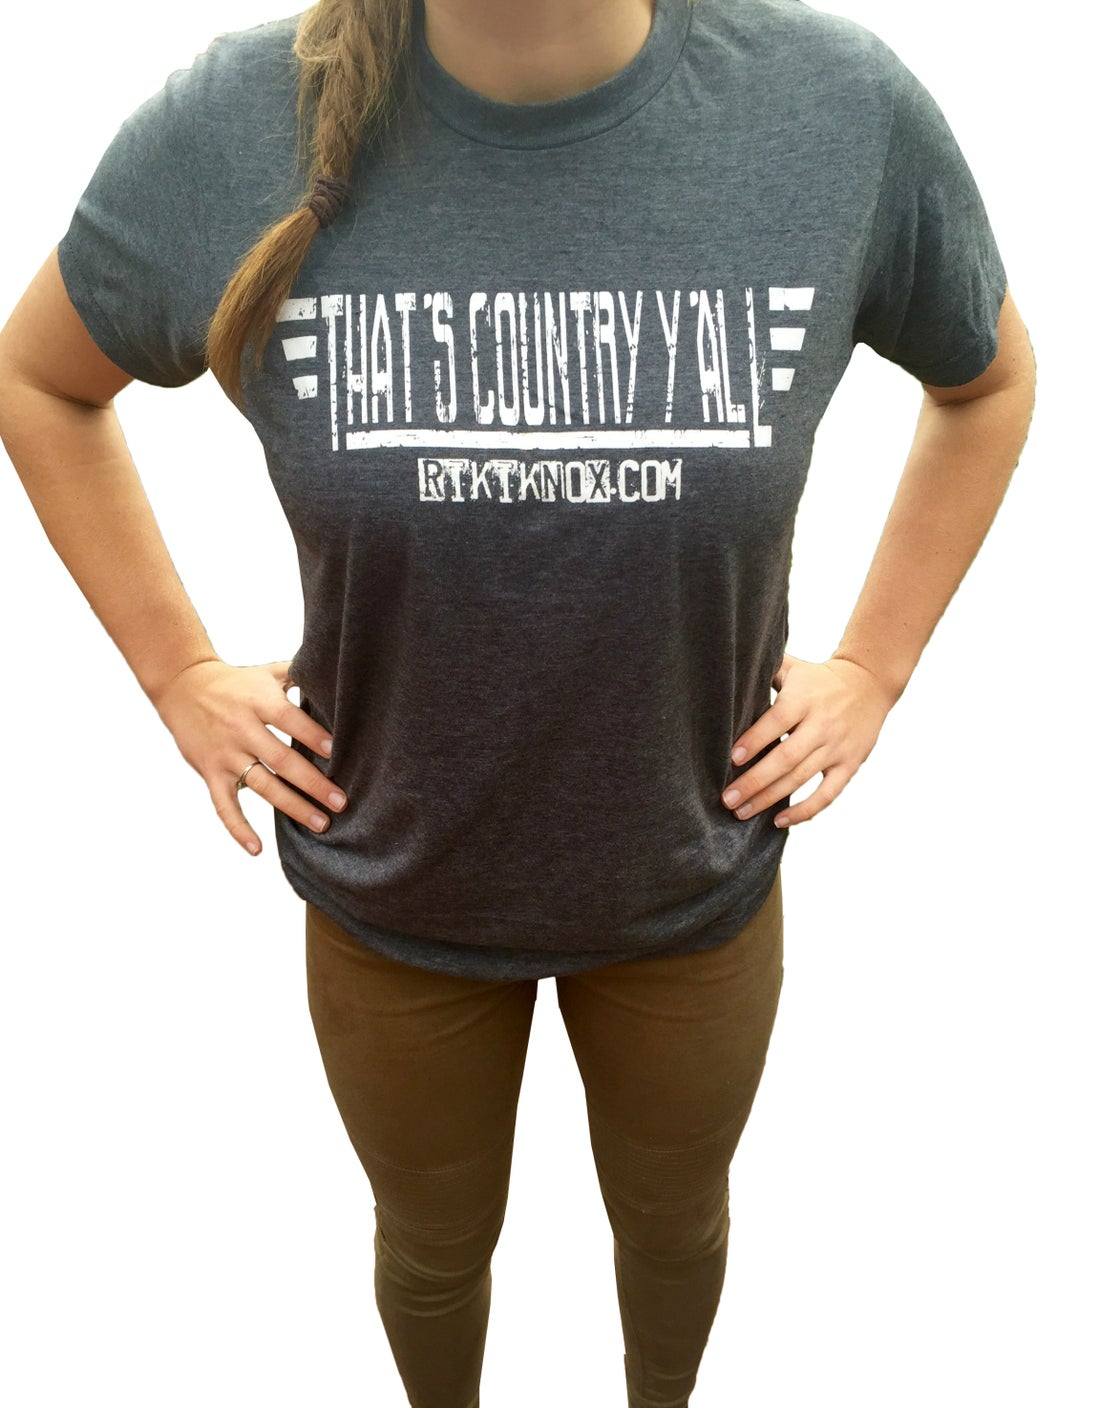 Image of 'That's Country Y'all' Unisex Tee